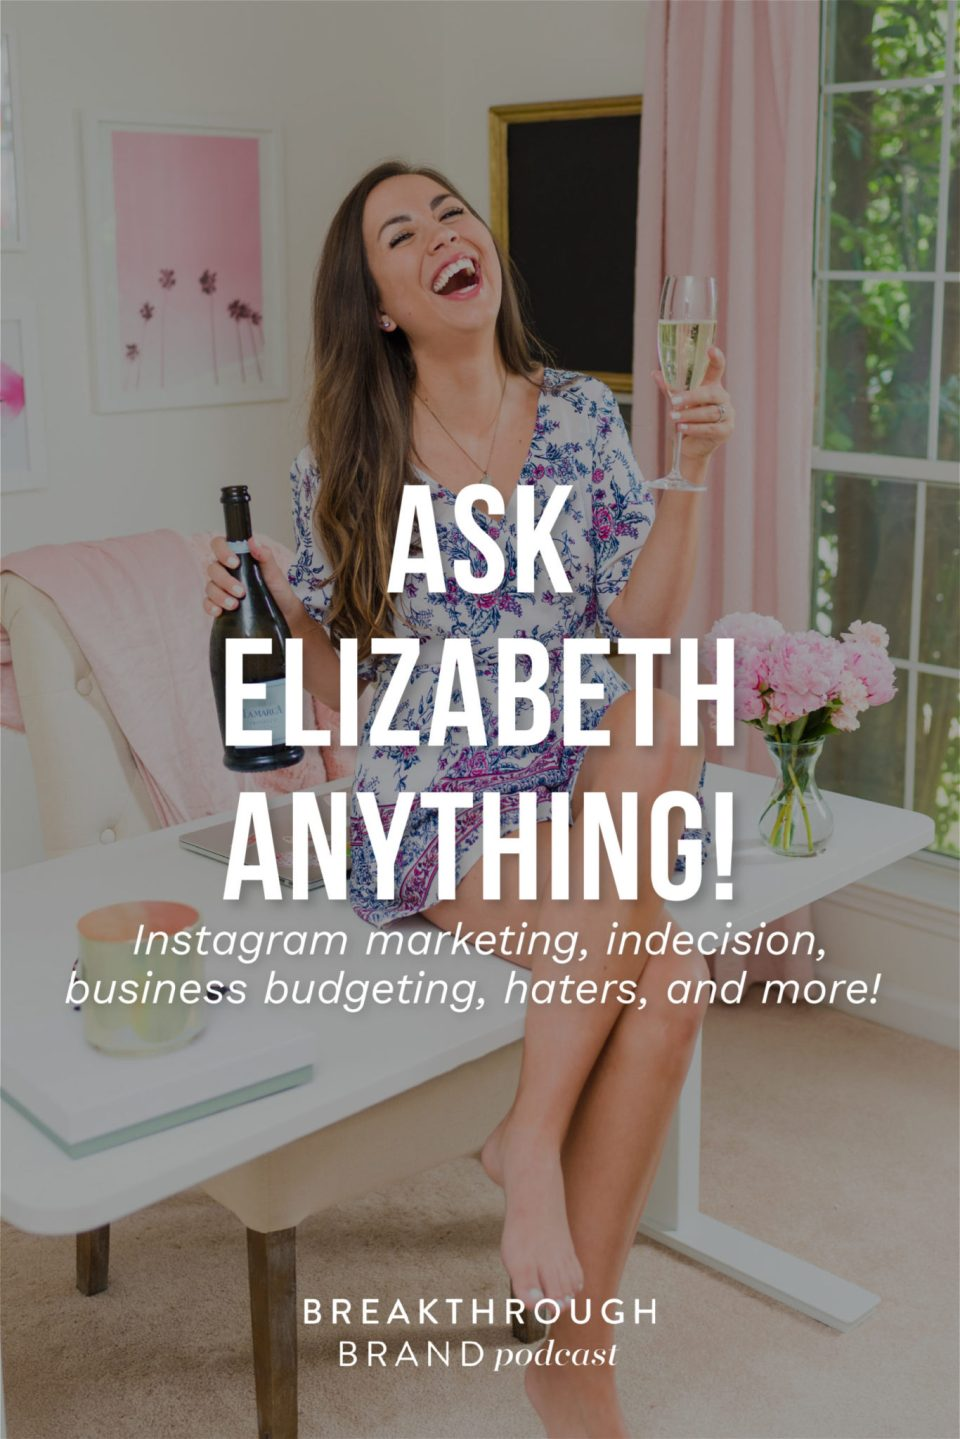 Elizabeth is answering your questions about Instagram marketing, indecision, haters, business budgeting and more on the Breakthrough Brand Podcast.